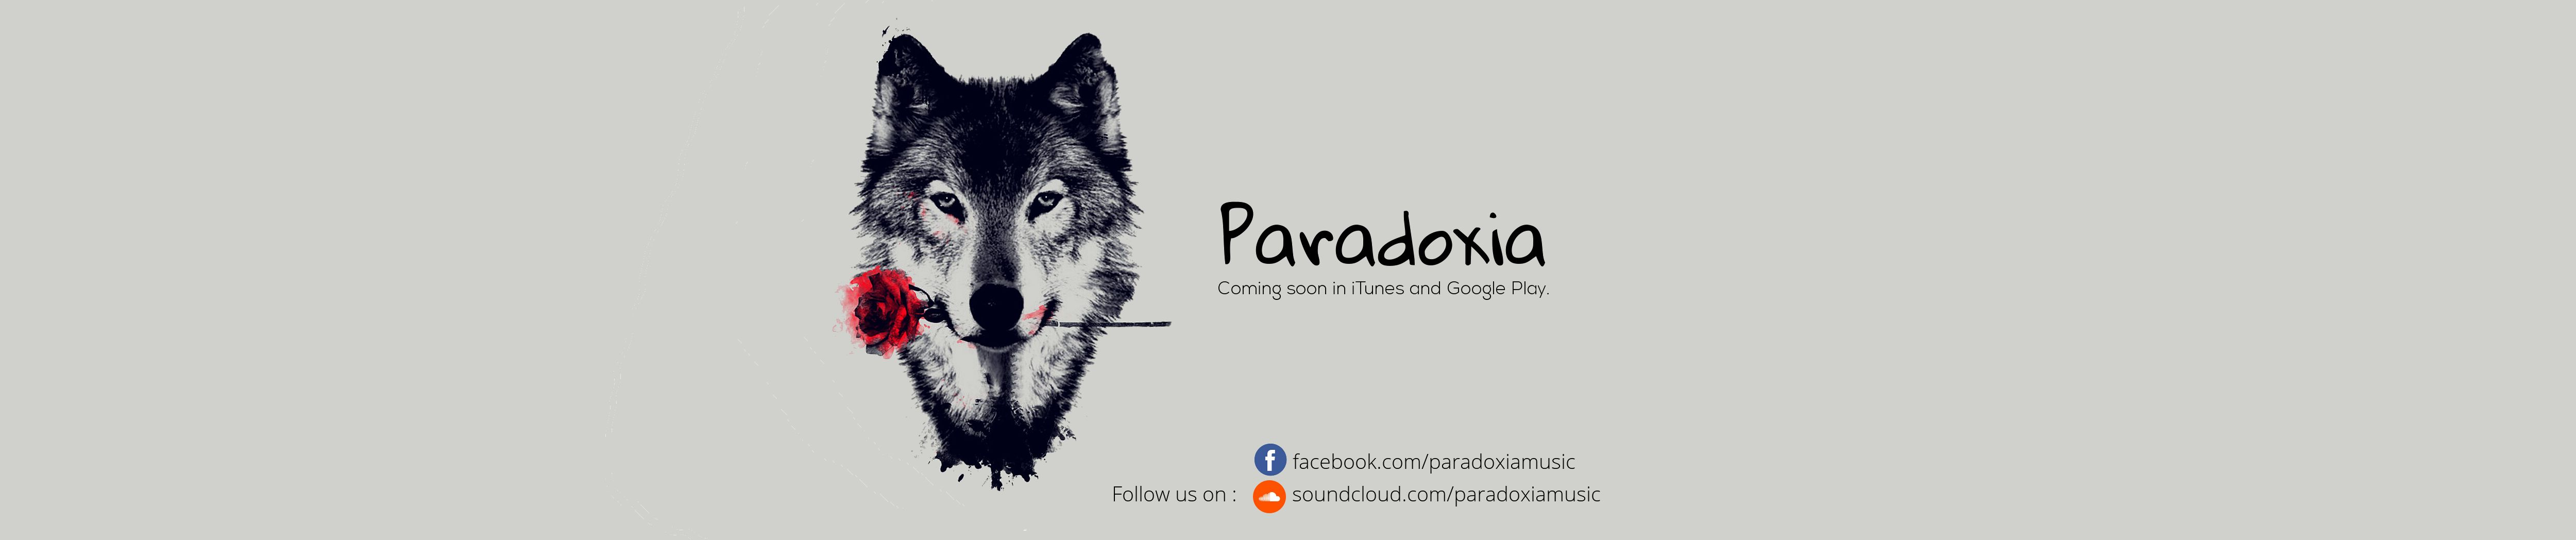 Paradoxia Paradoxia Music Free Listening On Soundcloud